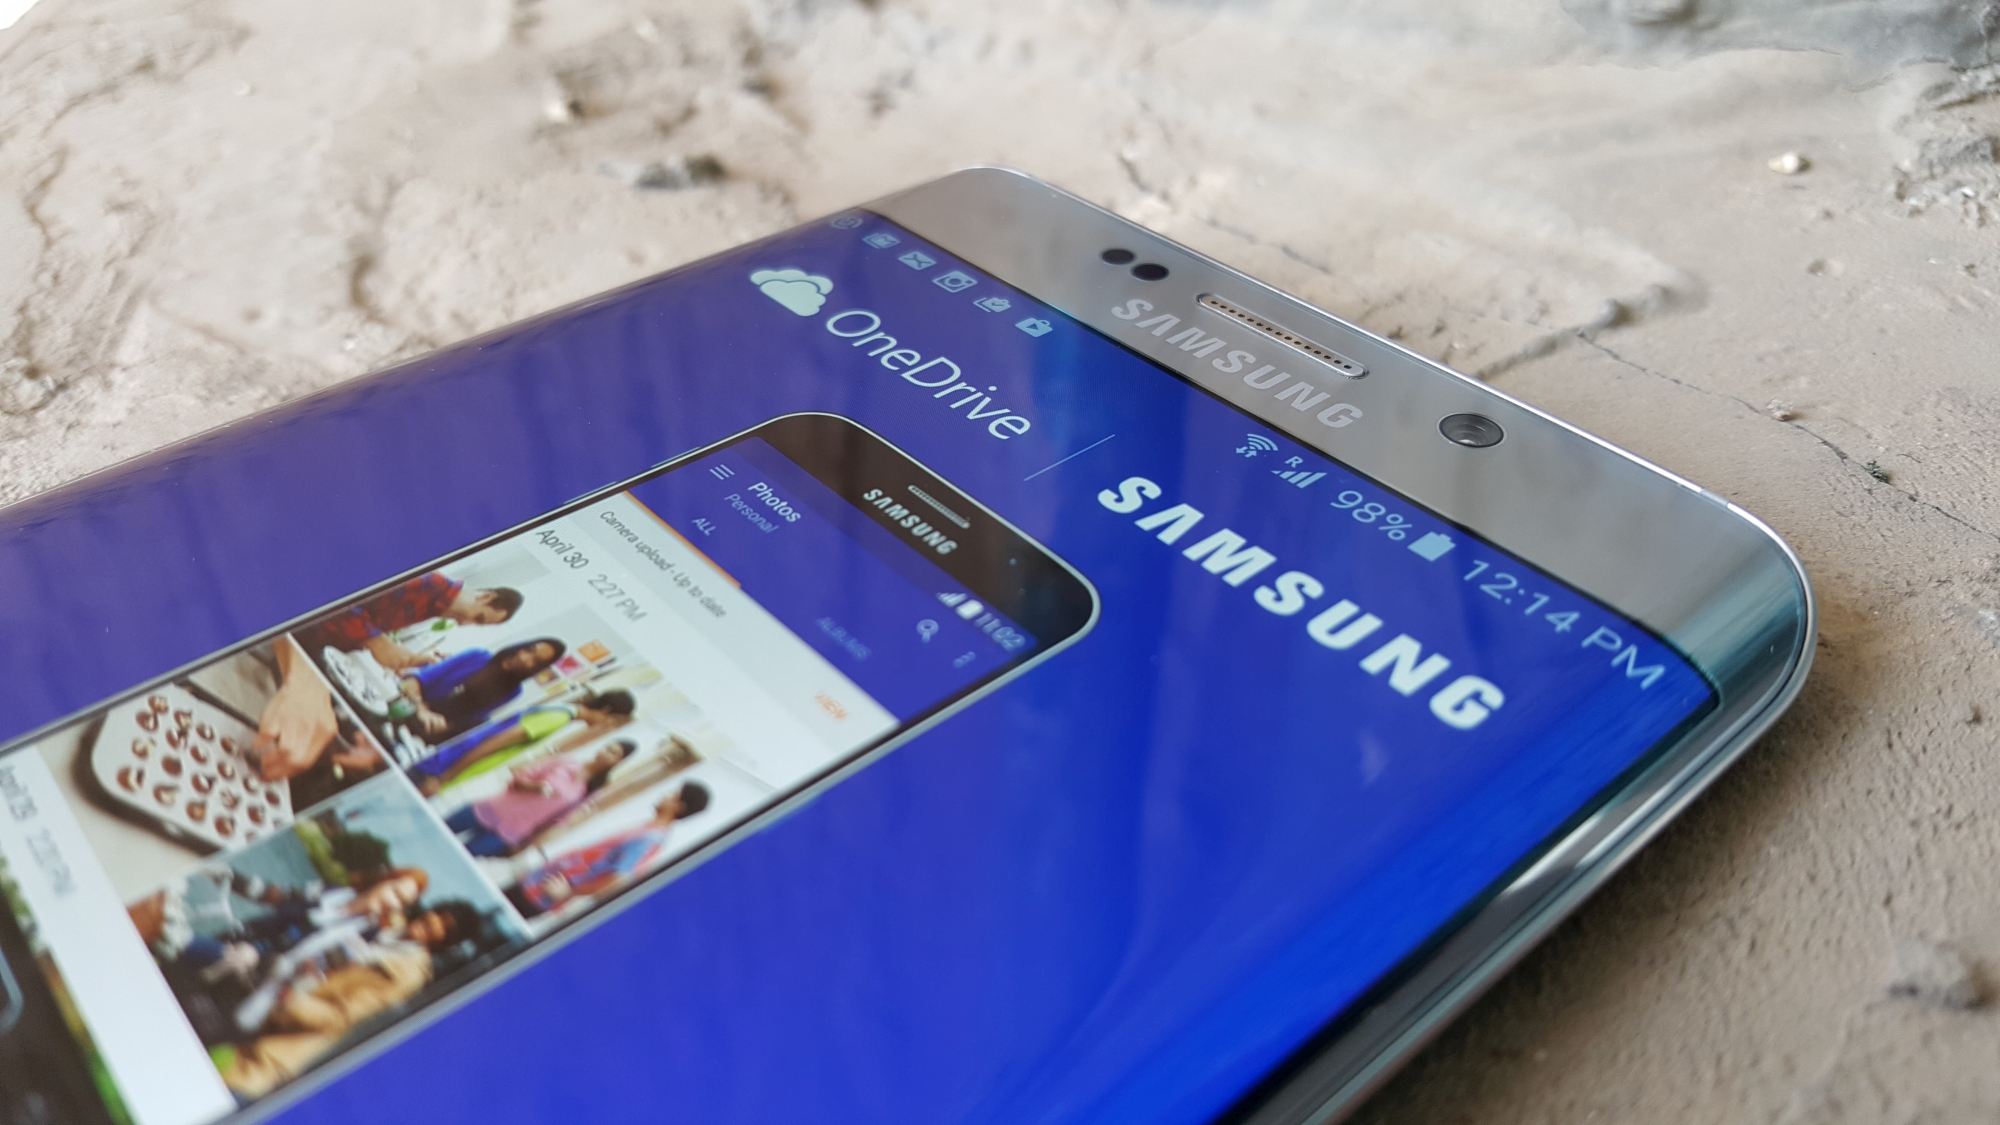 How to claim your free 100GB OneDrive storage on a Samsung Galaxy